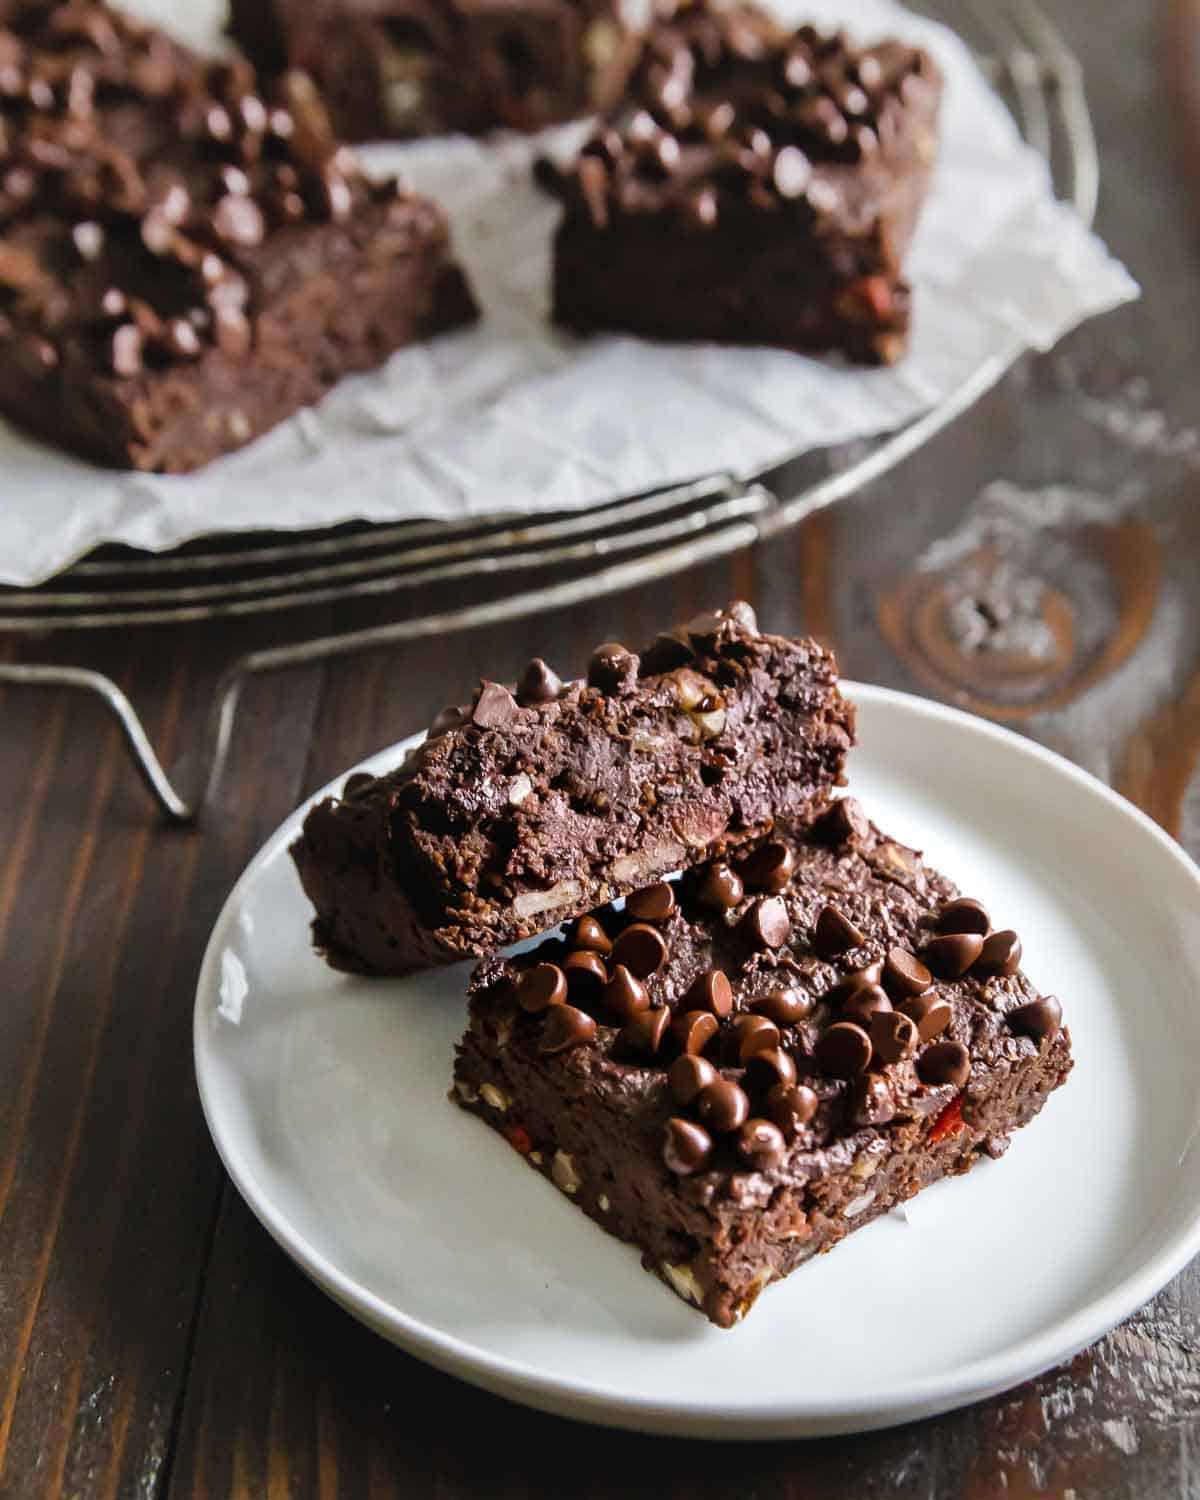 Intensely fudgy vegan brownies made with black beans require just 1 bowl and 20 minutes to bake for the ultimate healthy chocolate dessert.